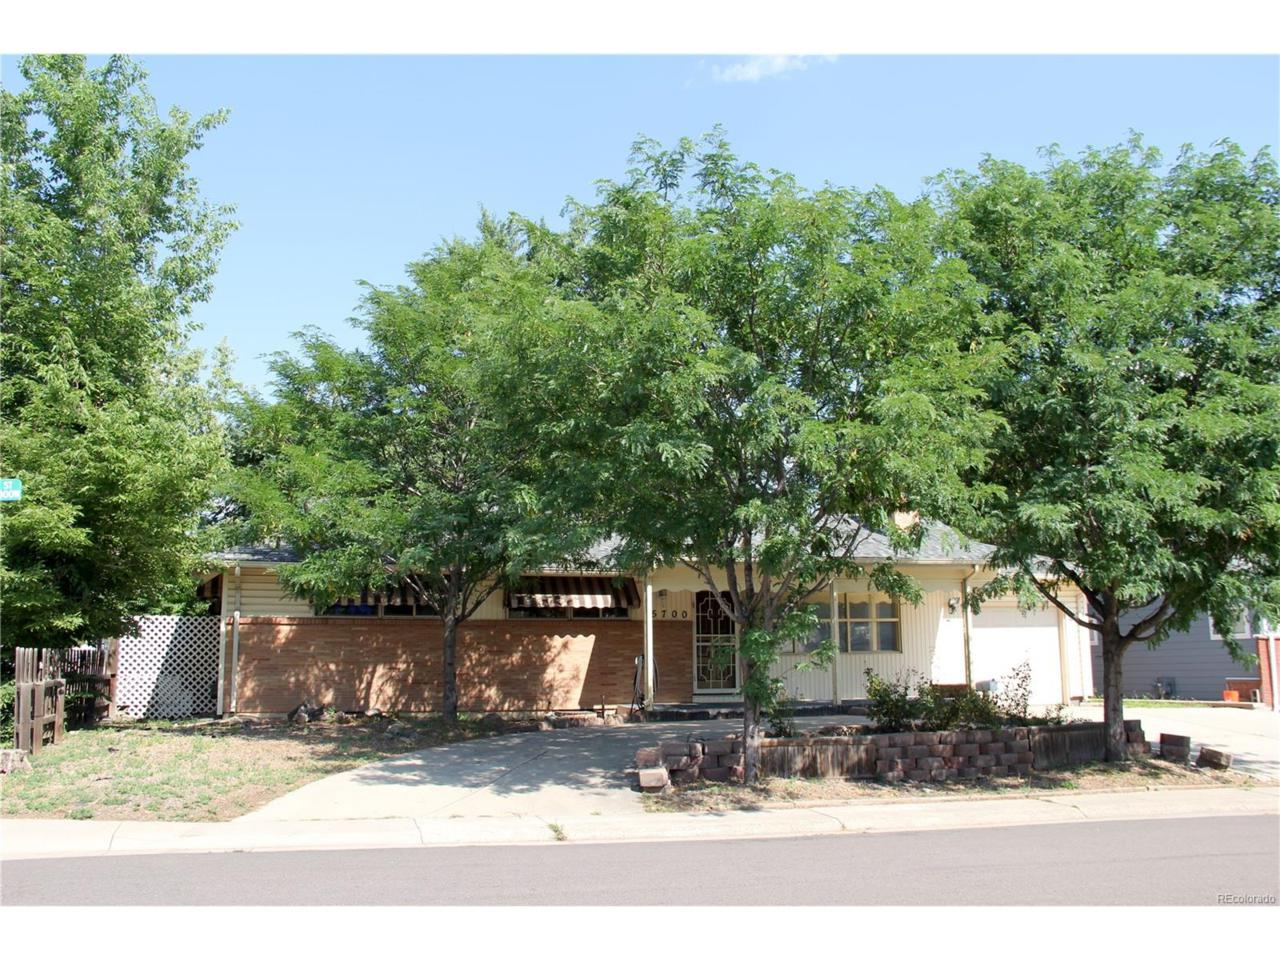 5700 S Hickory Street, Littleton, CO 80120 (MLS #4825030) :: 8z Real Estate